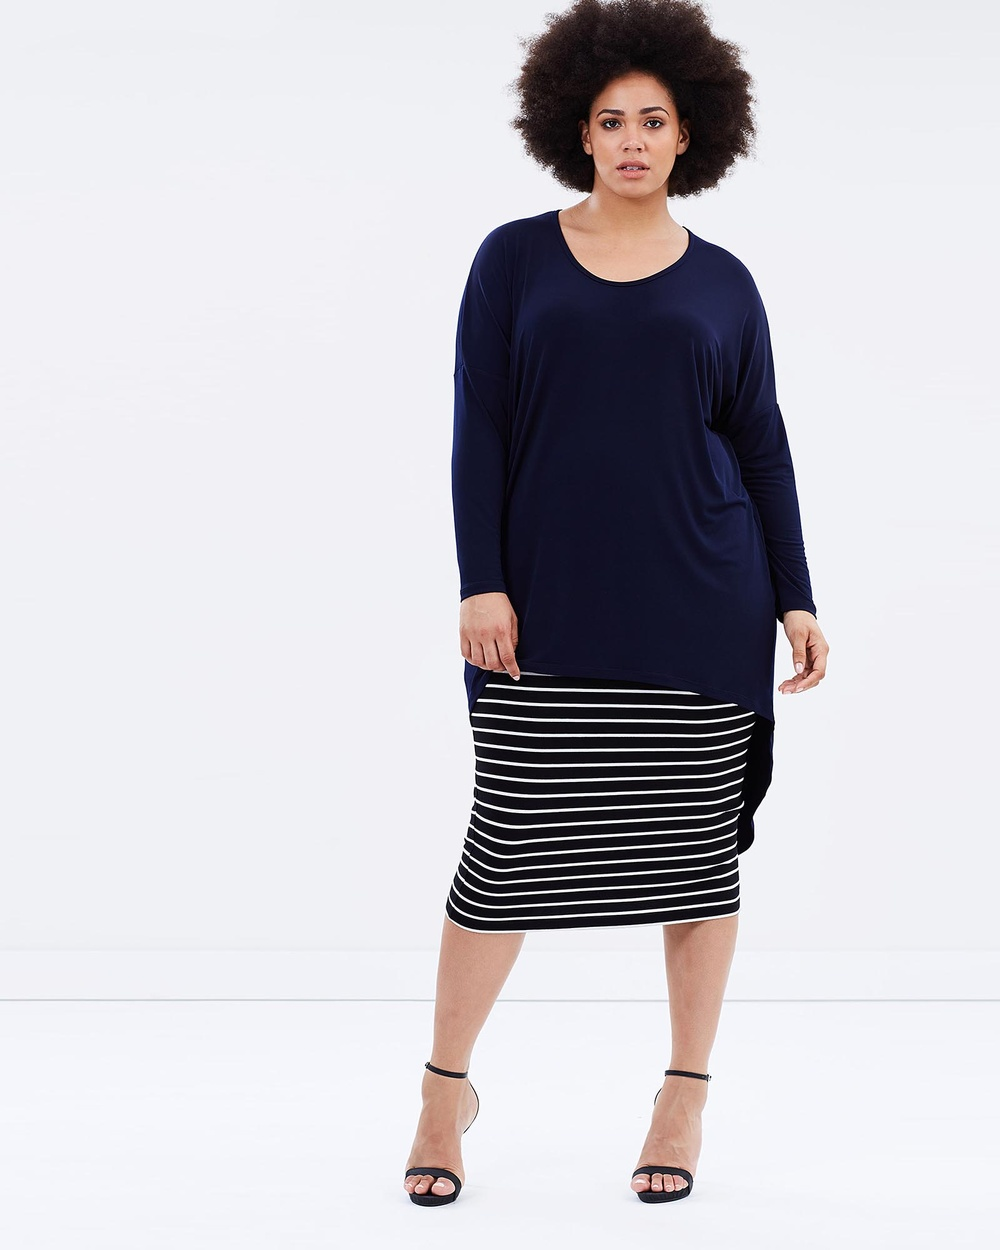 Harlow Diva Oversized Top Tops Navy Diva Oversized Top